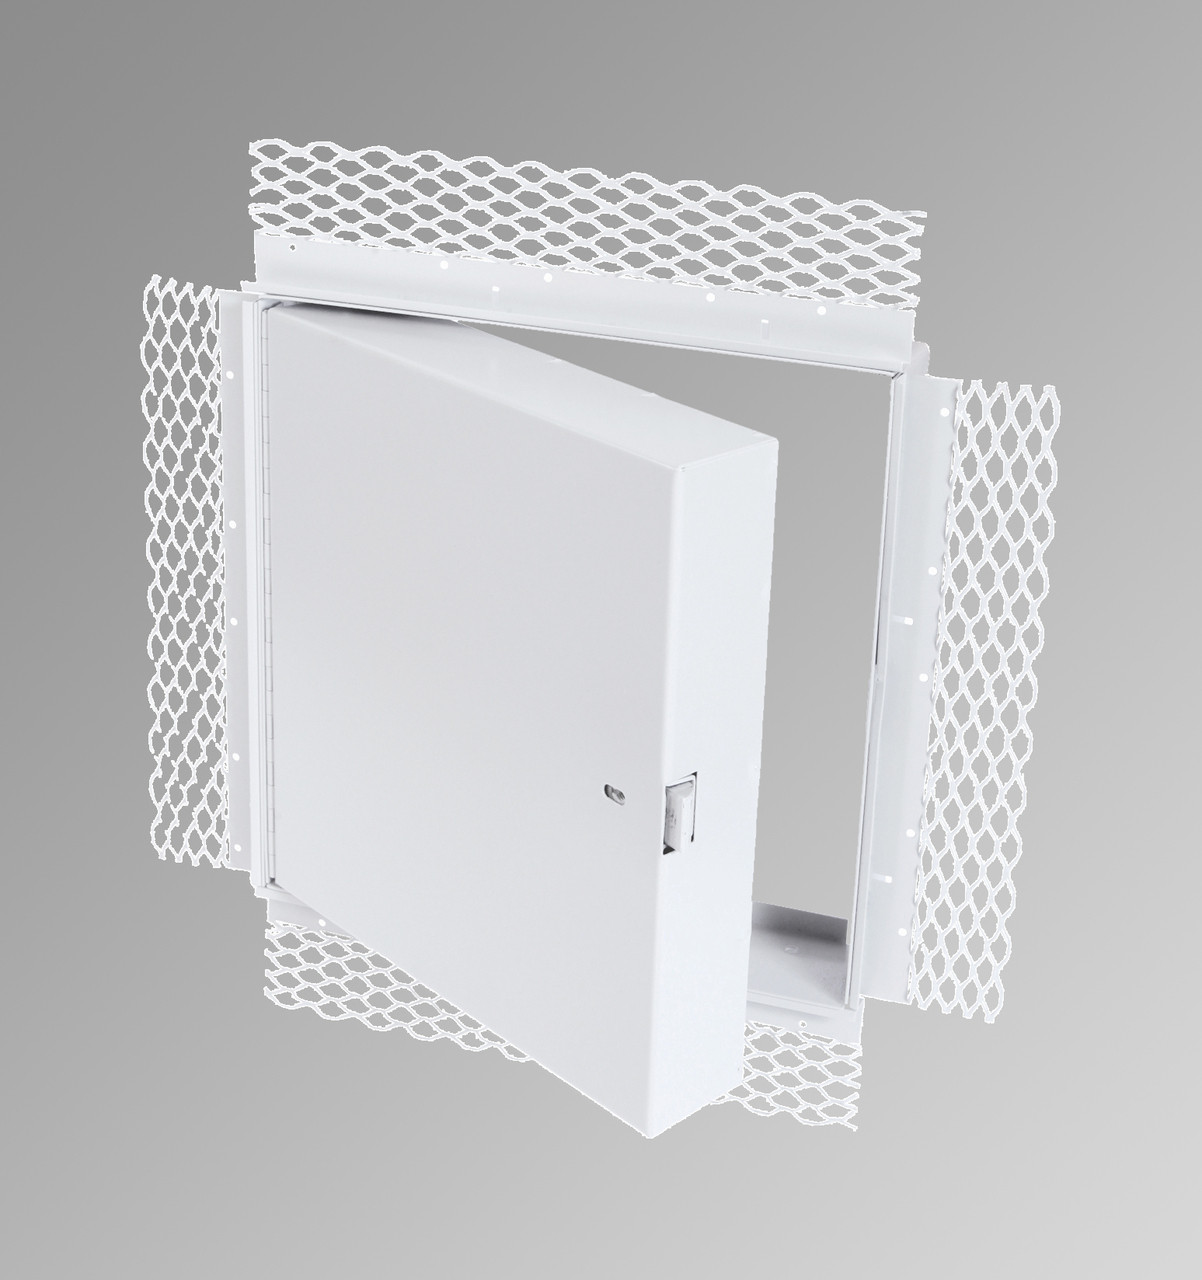 22 Quot X 30 Quot Fire Rated Insulated Access Door With Plaster